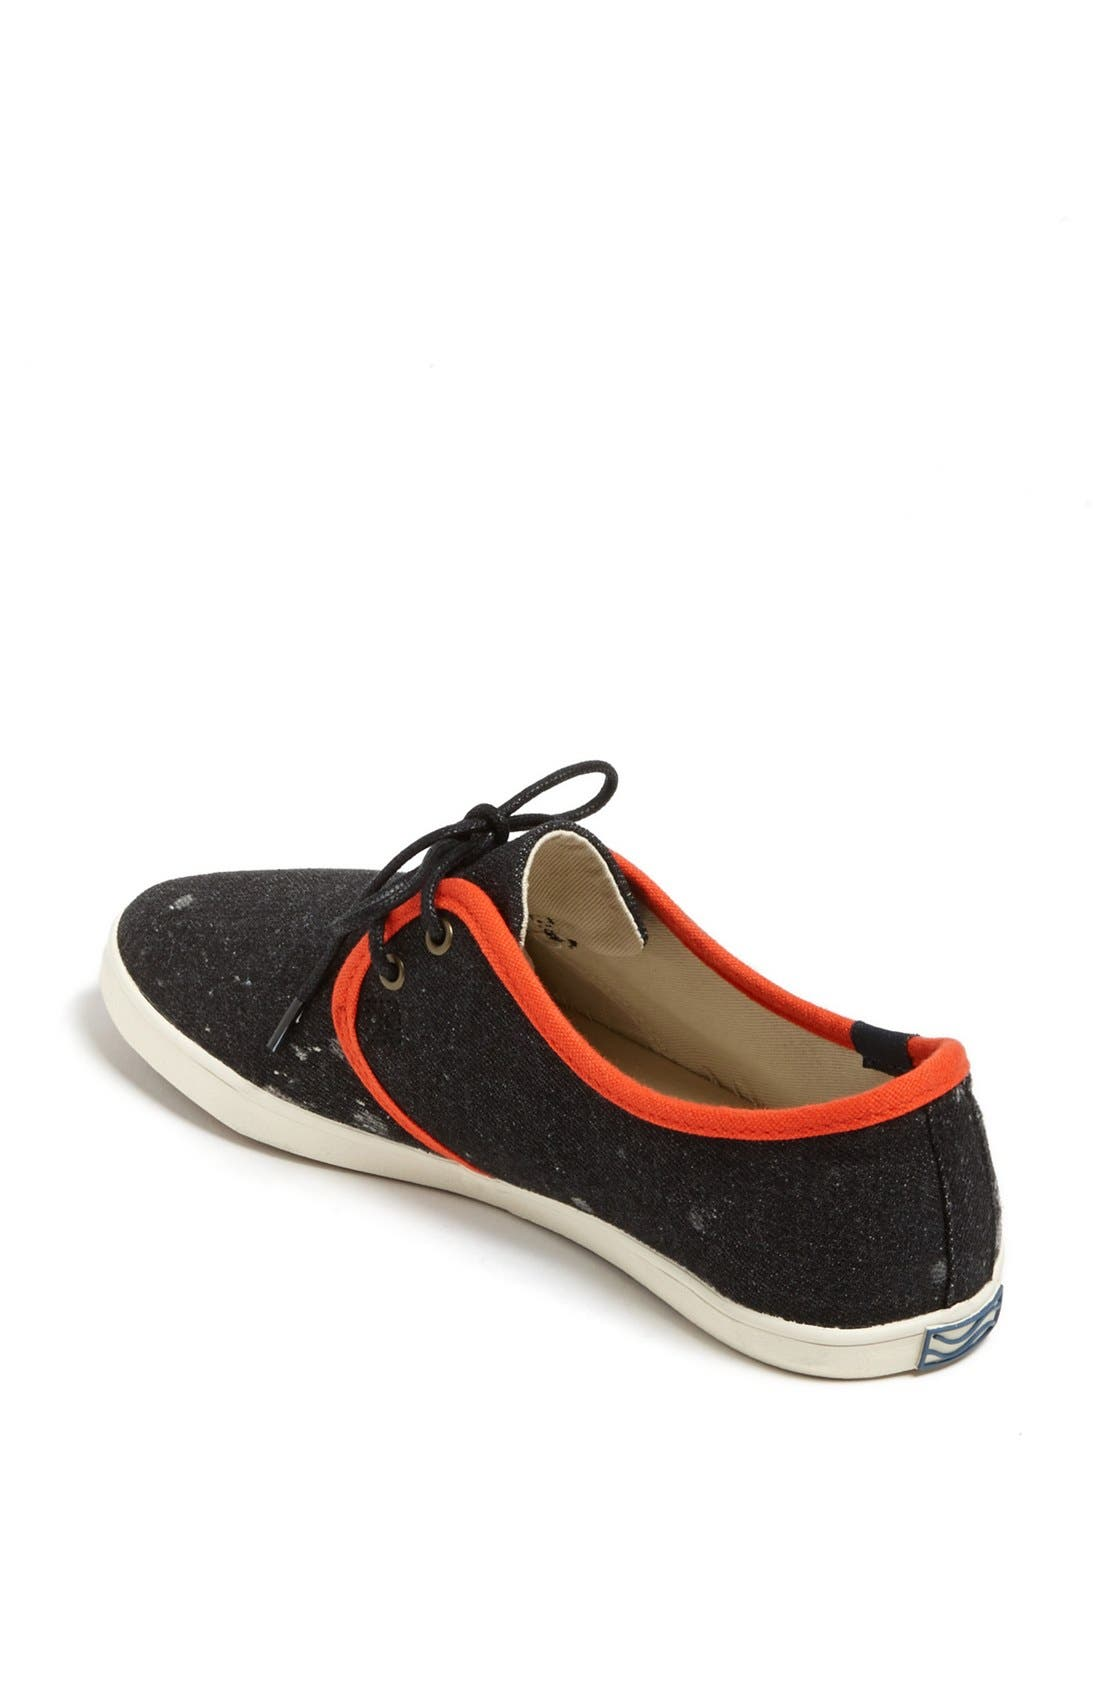 Alternate Image 2  - Soludos Lace-Up Sneaker (Women)